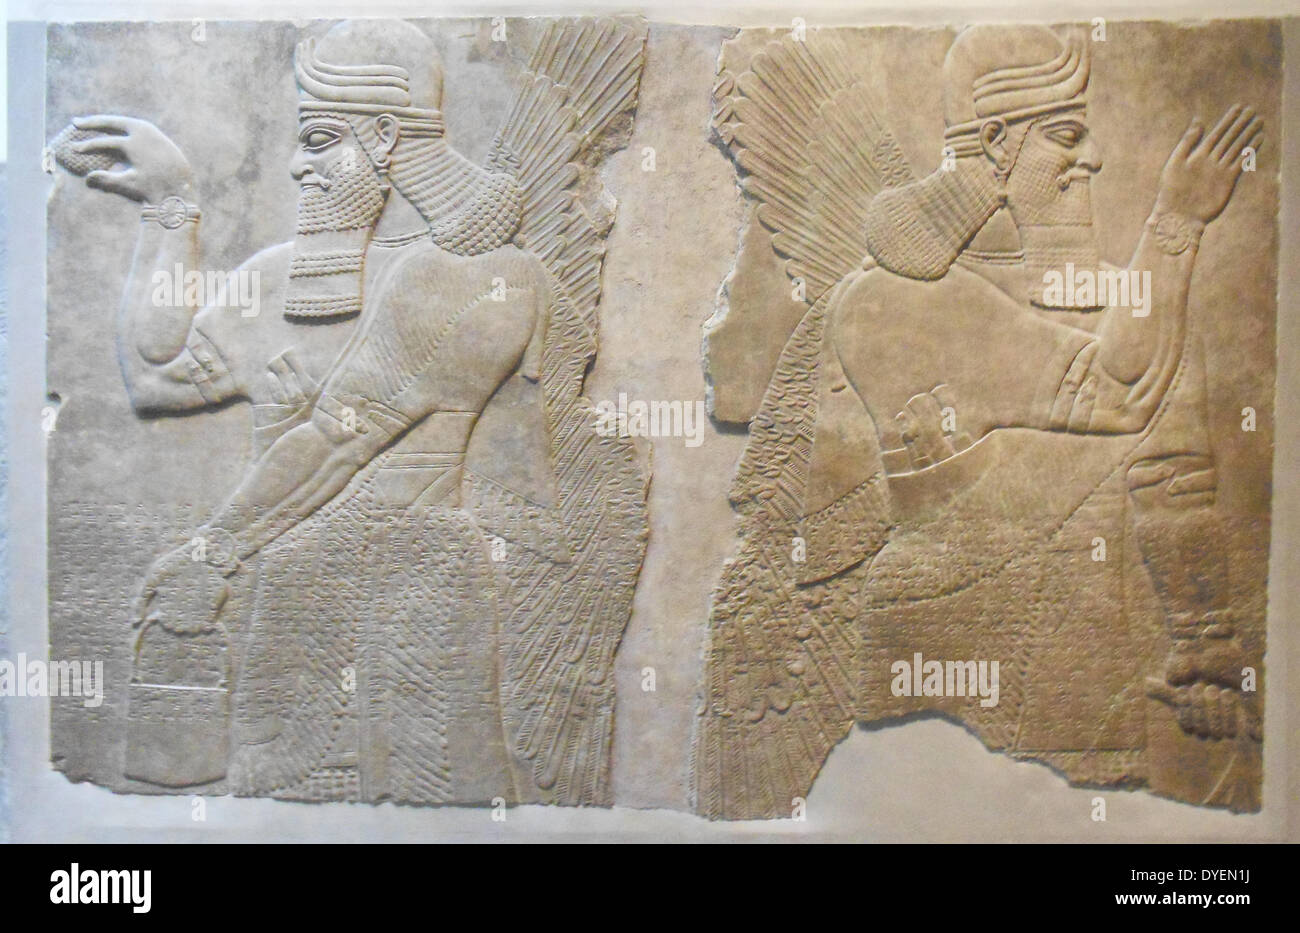 assyrian dating sites Nineveh on line who are the assyrians: who are the assyrians nicholas aljeloo the assyrian australian academic in iraq dating to the third century bc.